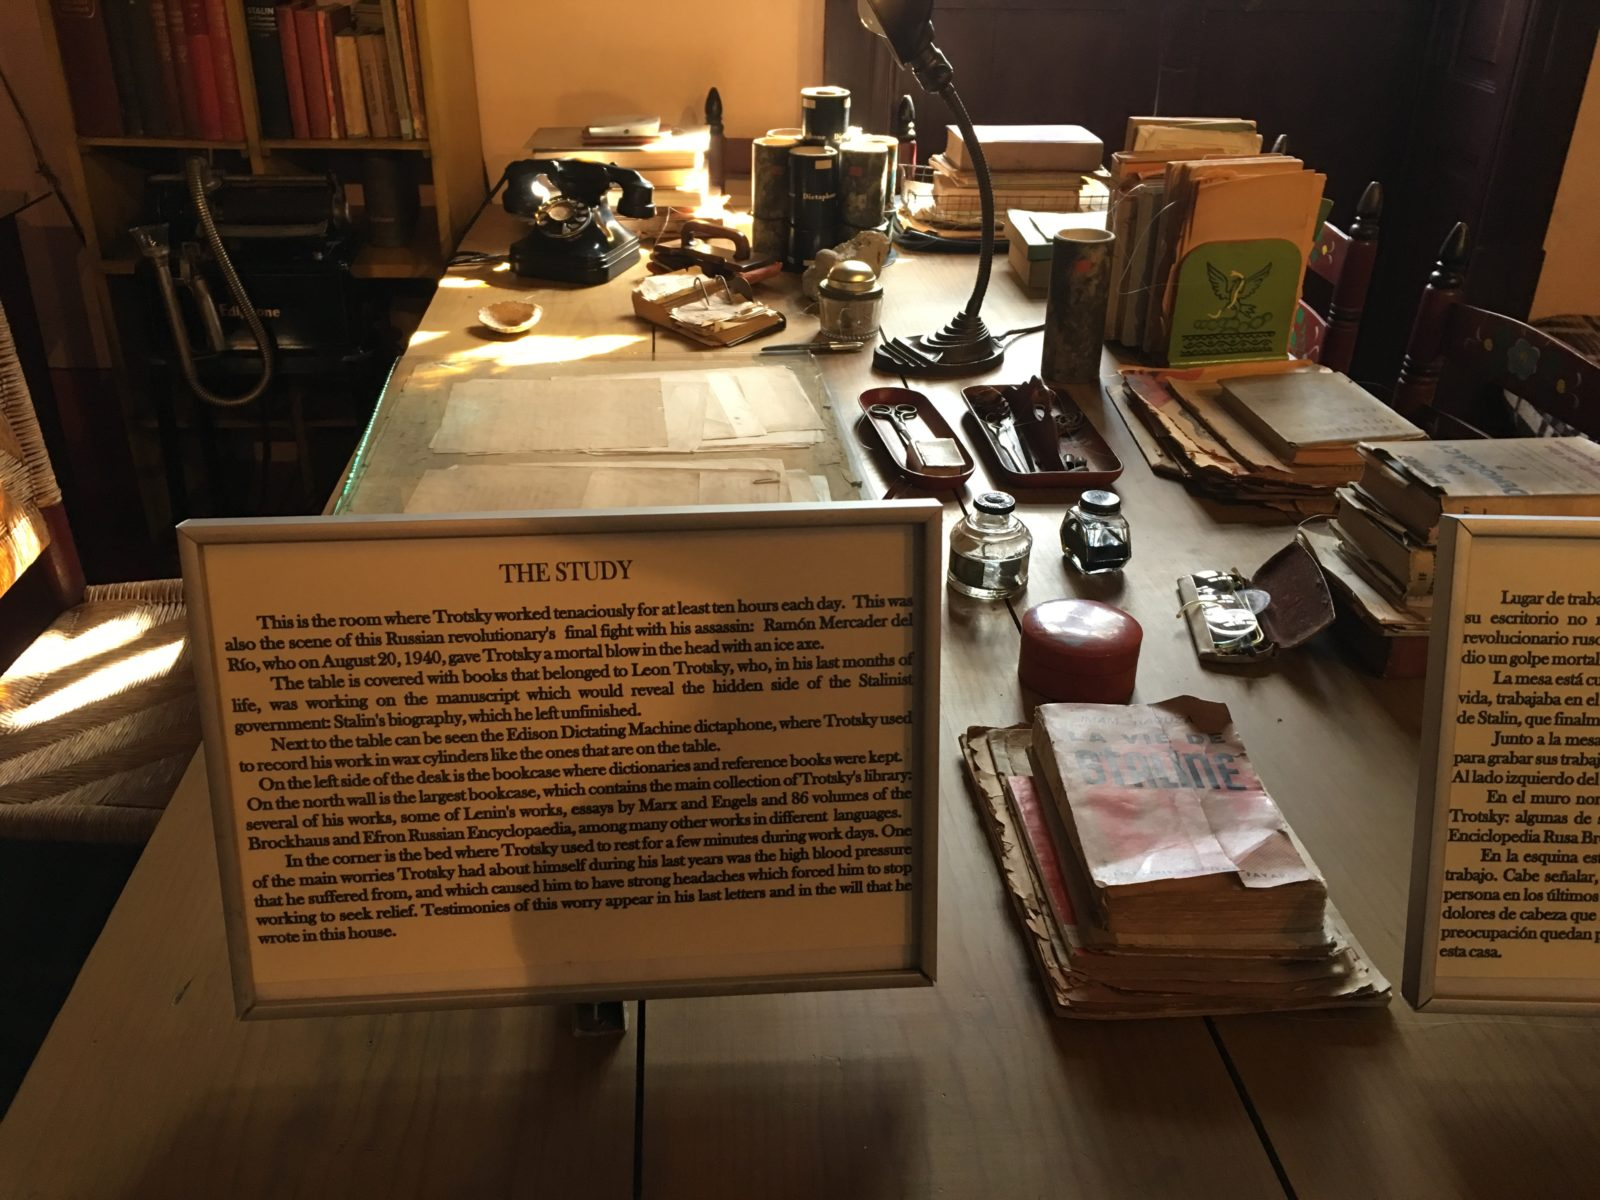 Trotsky's desk remains as it was, or so they say. It looks quite tidy to me, not at all like any desk I've ever had.